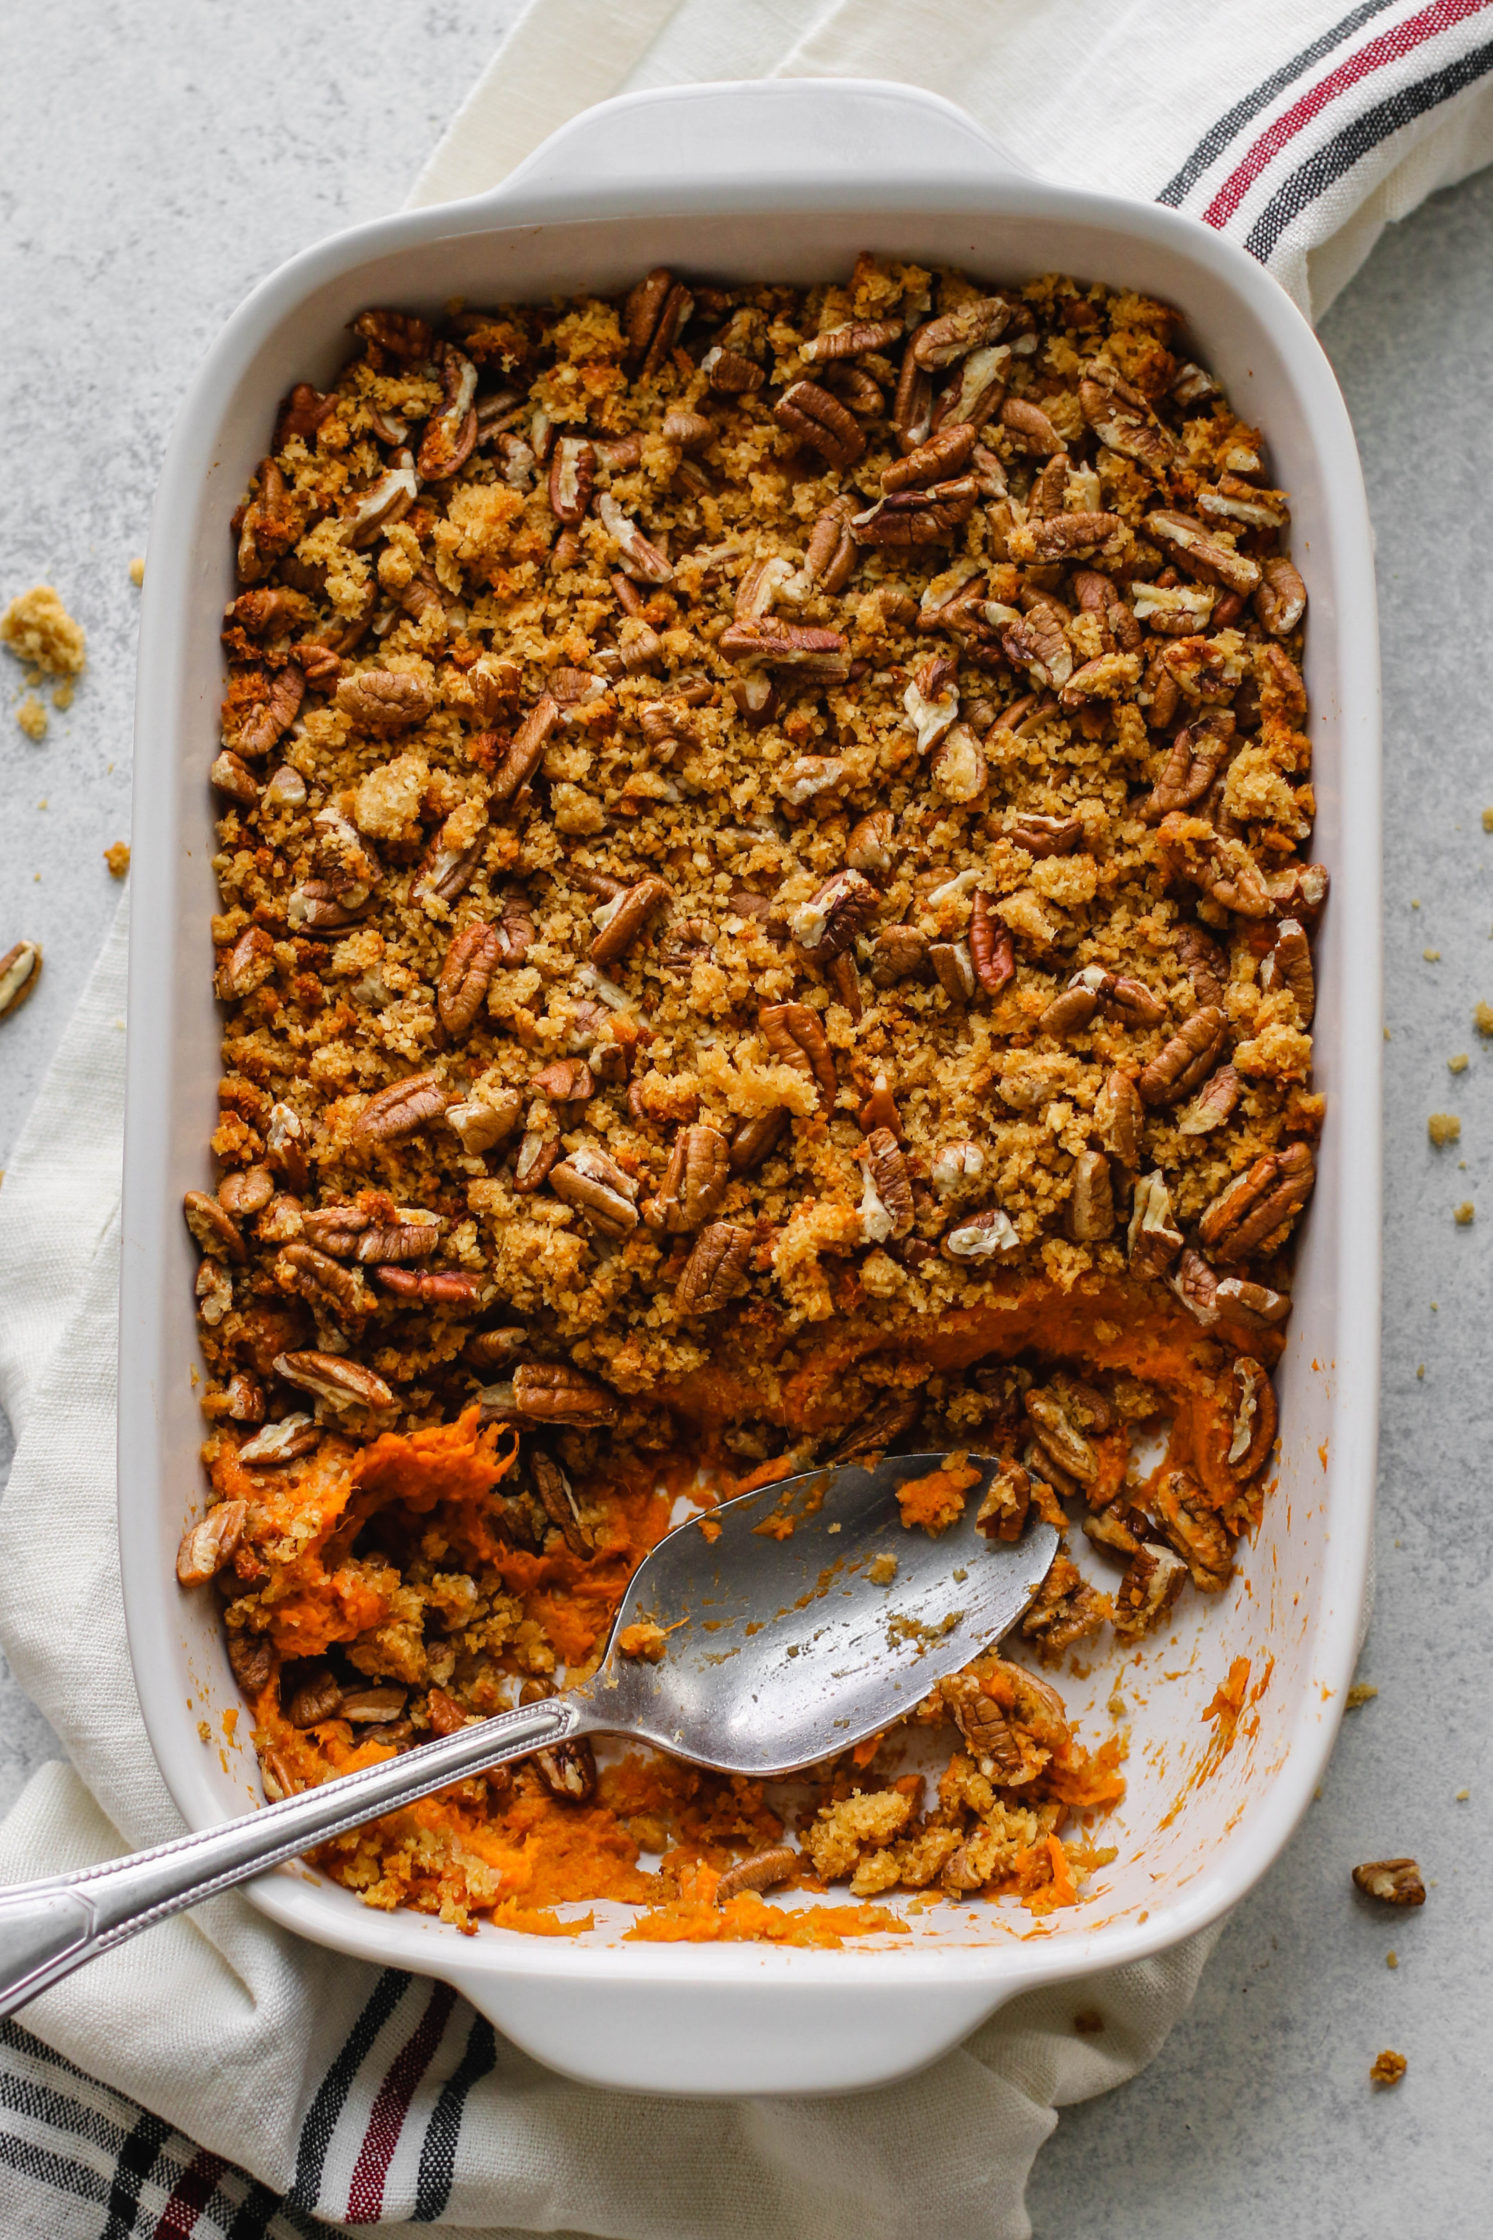 Vegan & Grain Free Sweet Potato Casserole